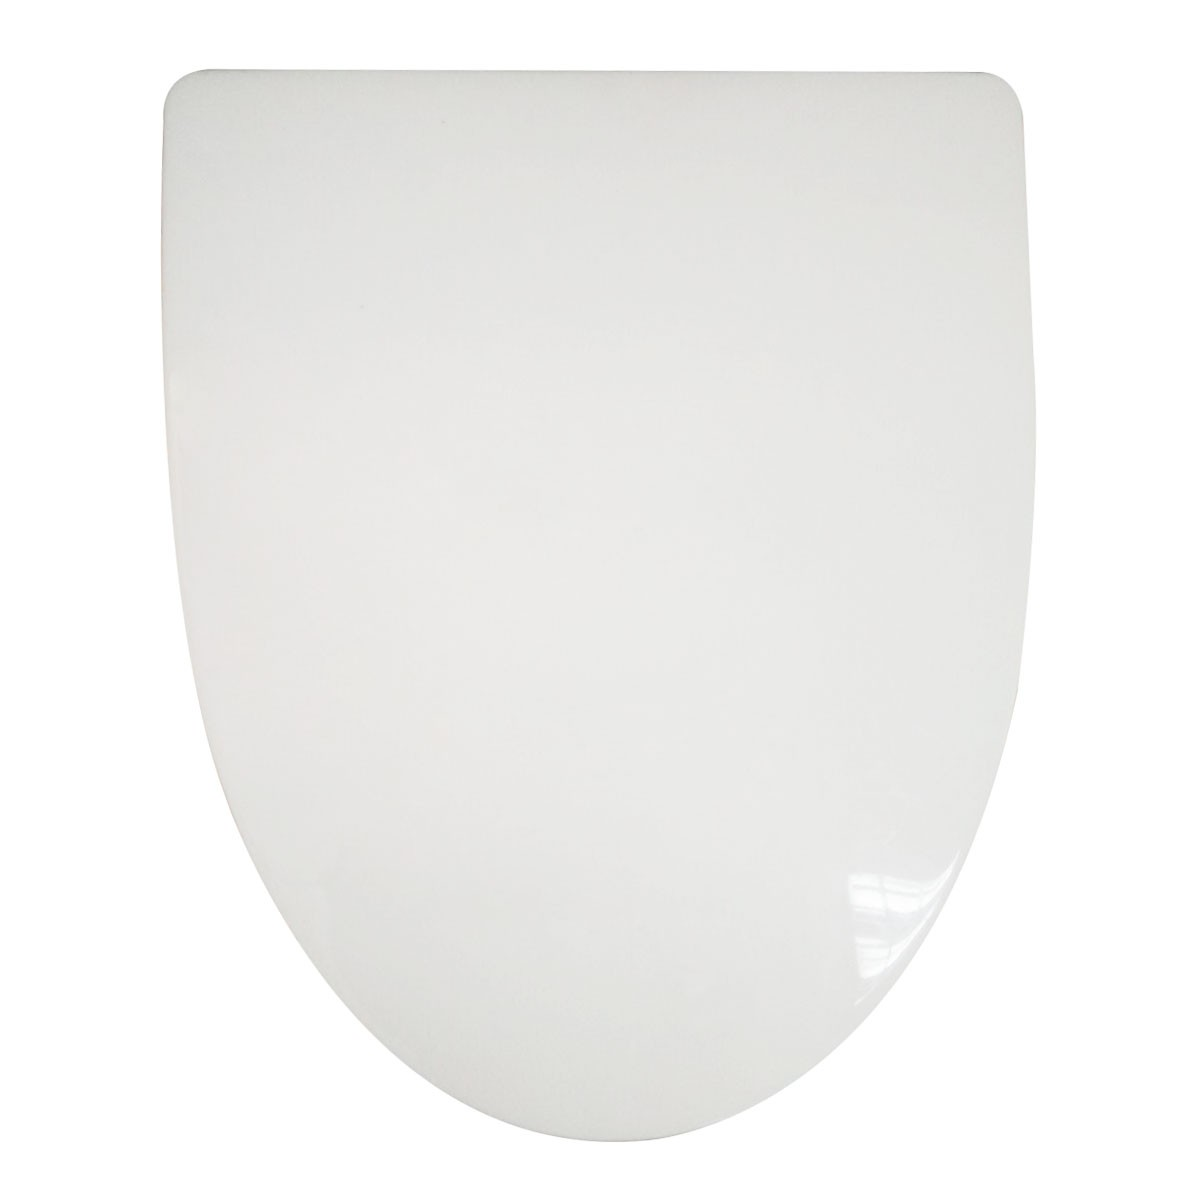 White Soft Close Toilet Seat with Cover (DK-CL-022)